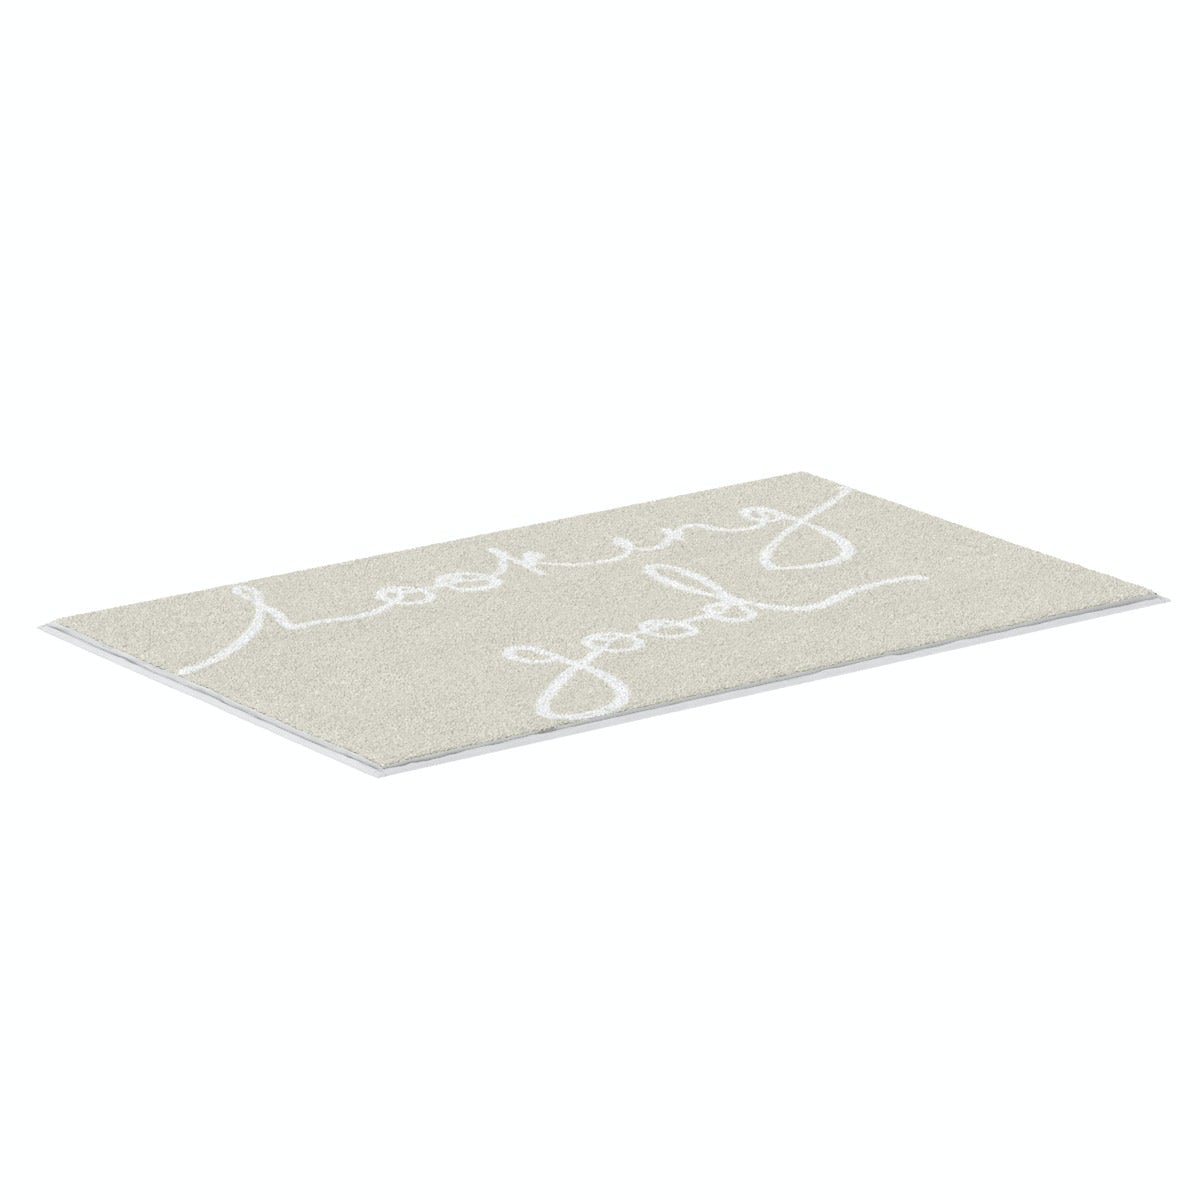 Hug Rug Looking Good bathroom mat 80 x 50cm